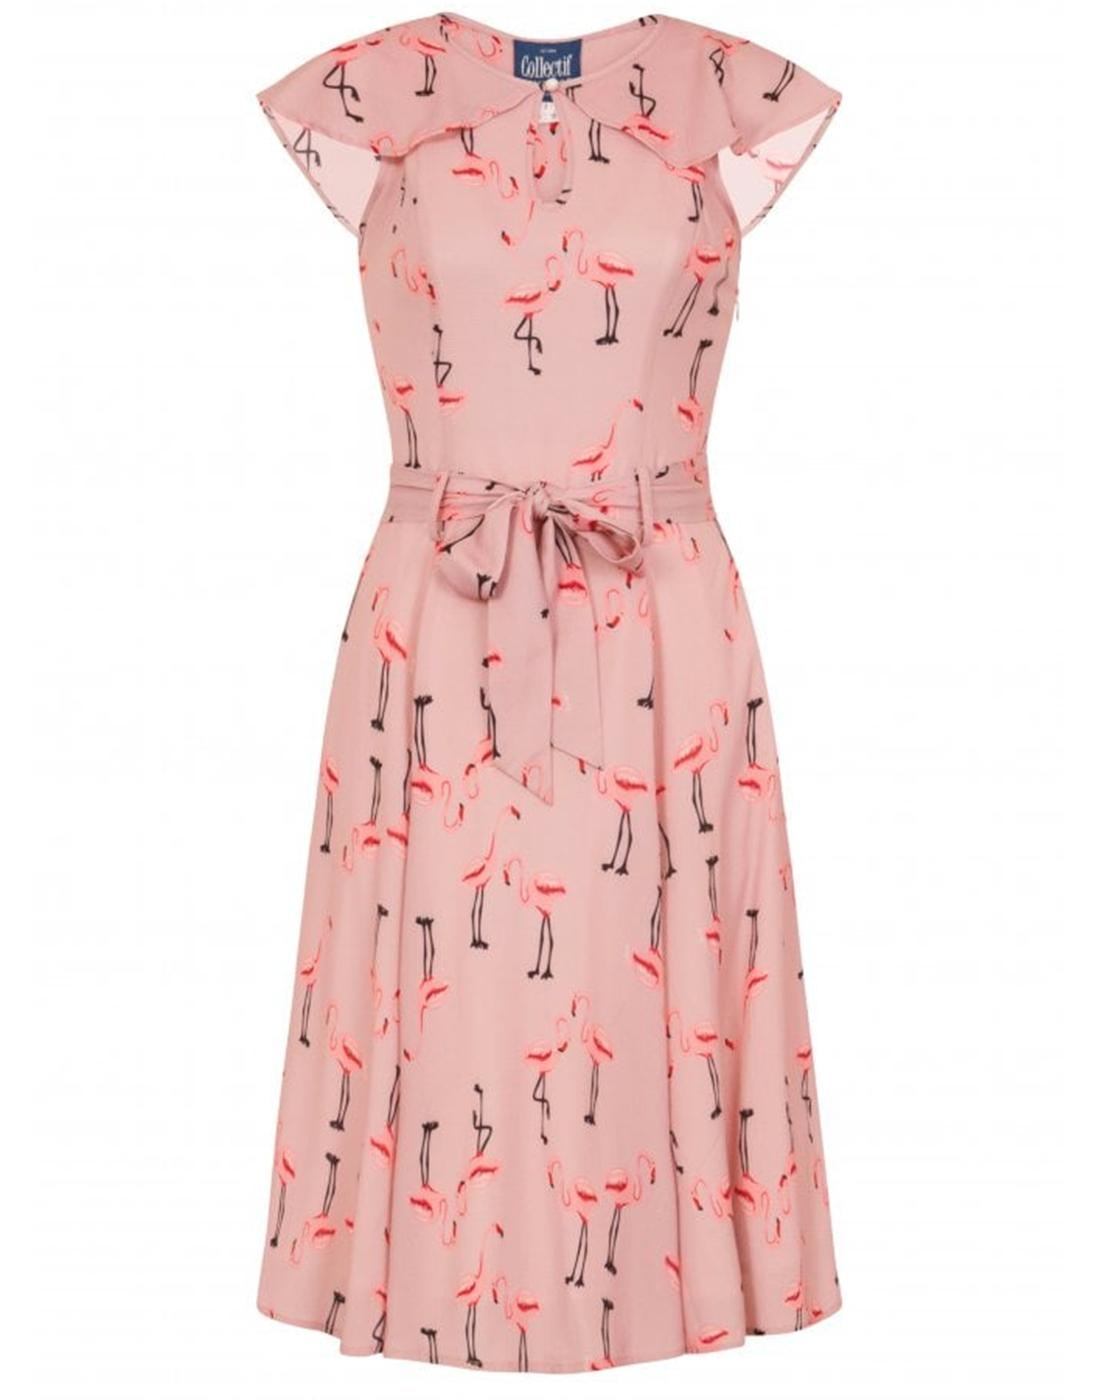 Tamara COLLECTIF Retro Vintage 50s Flamingo Dress